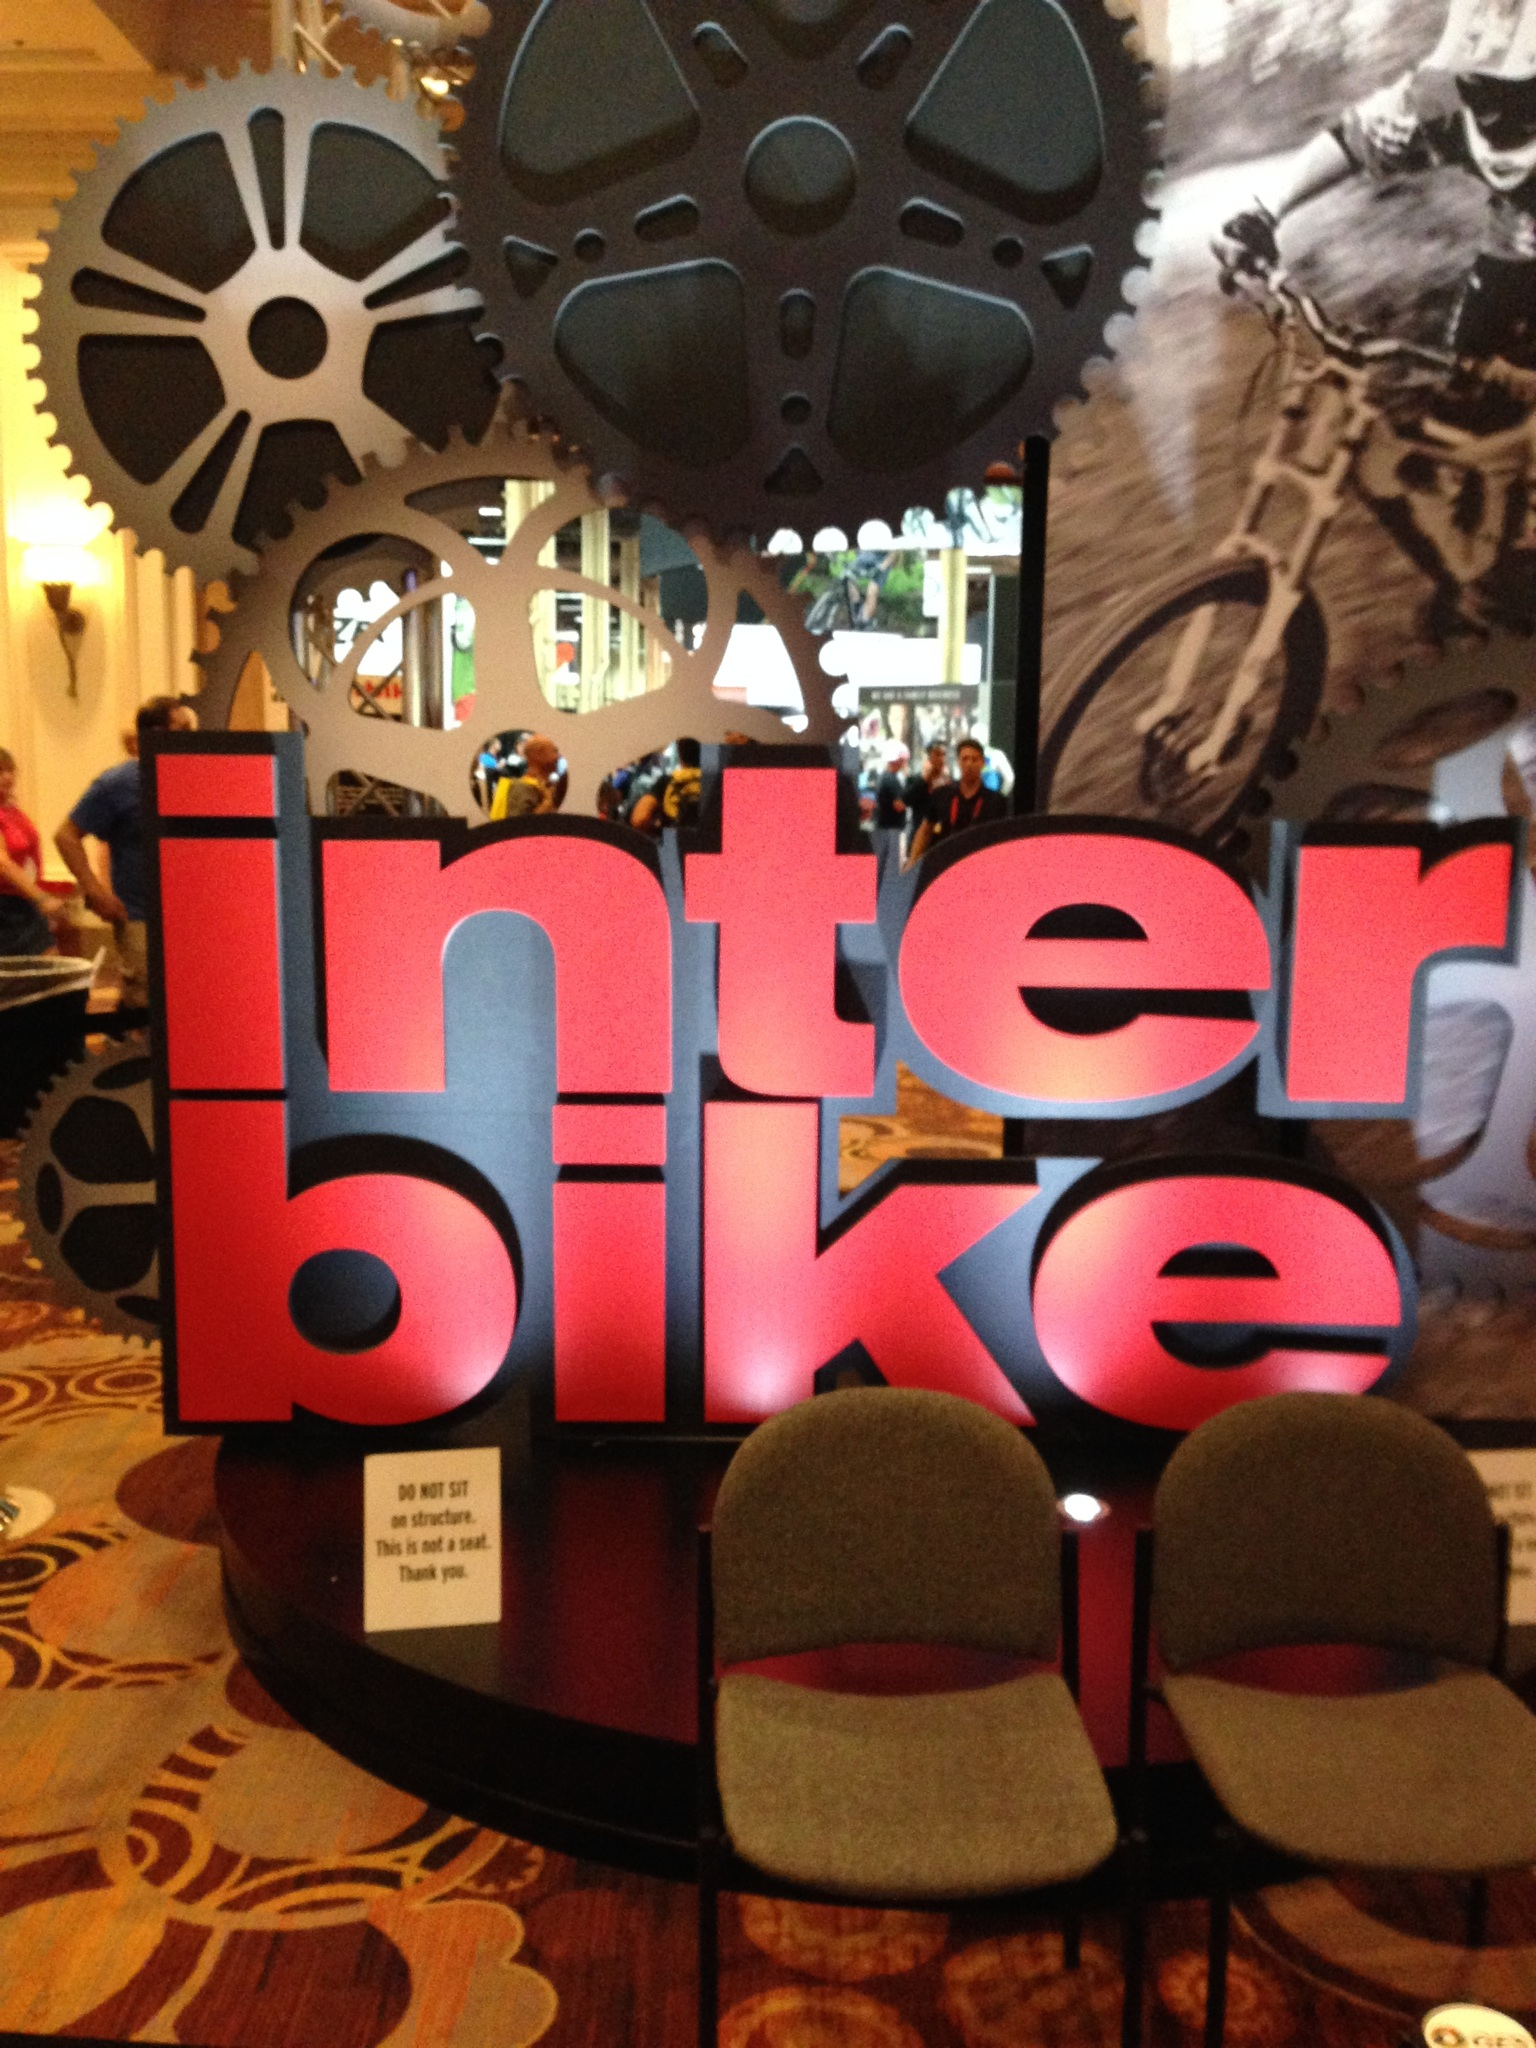 Interbike 2014:  No Disappointment!